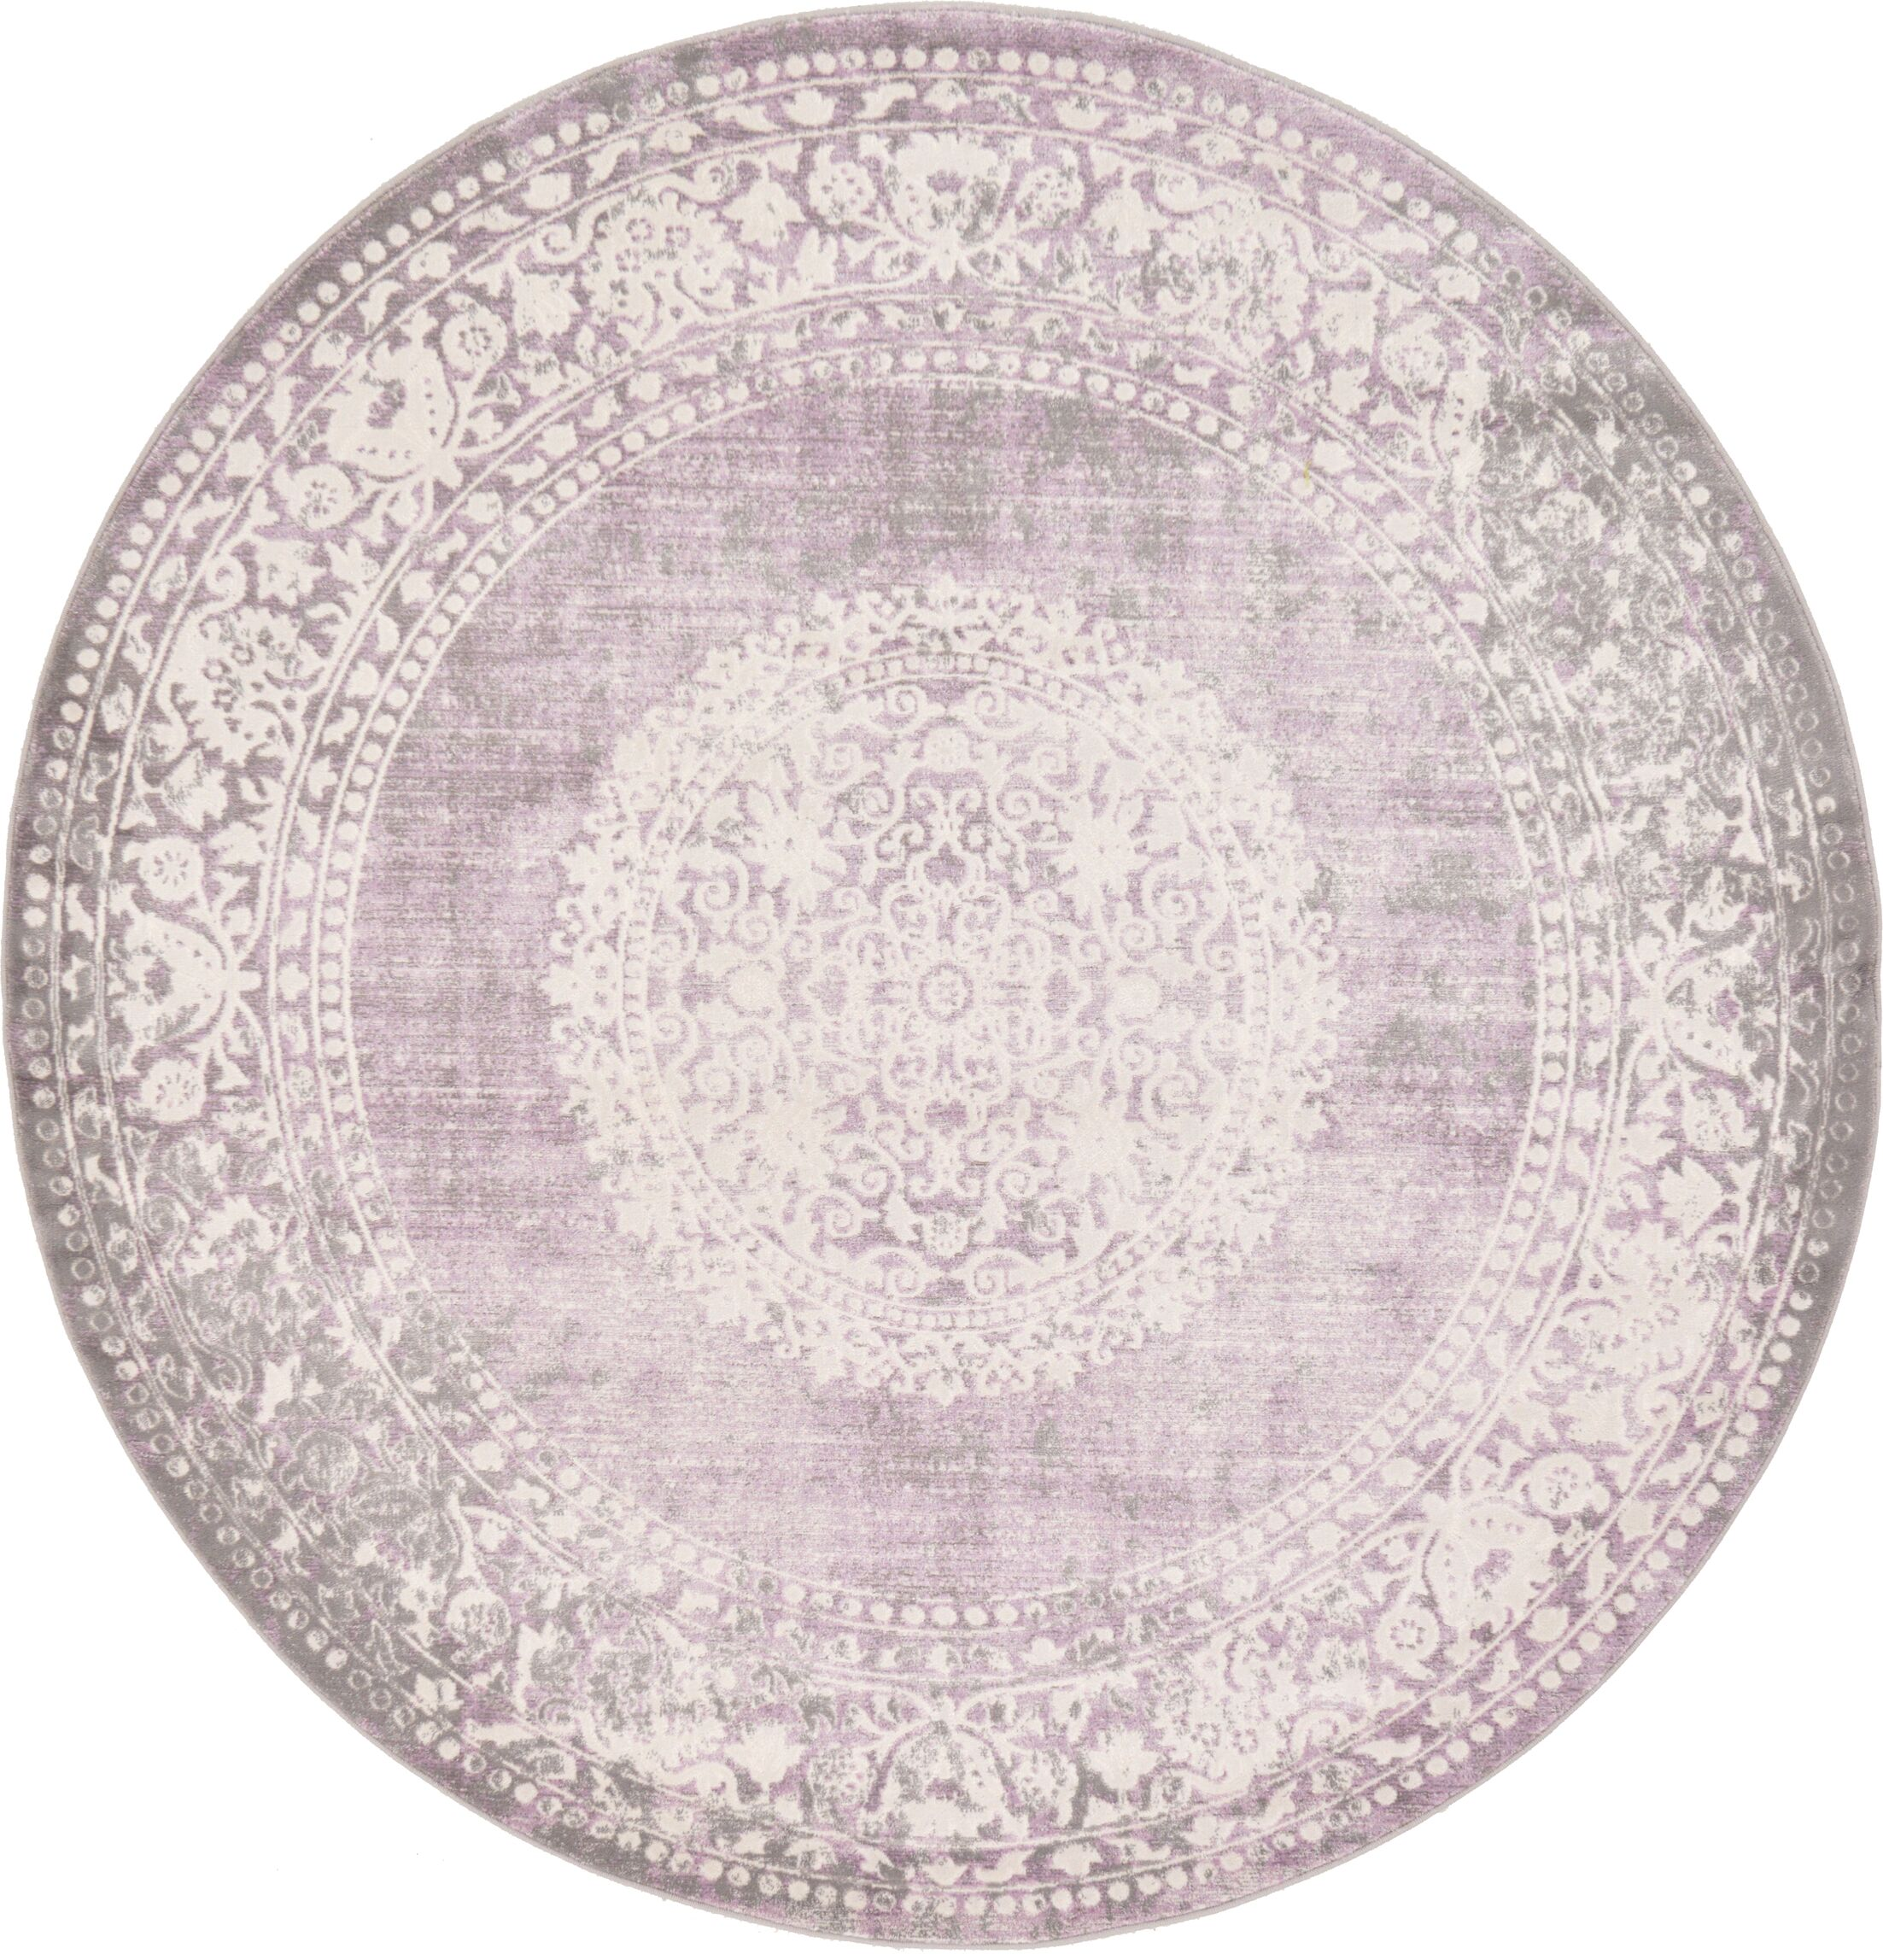 Bryant Green/Ivory Area Rug Rug Size: Round 6'